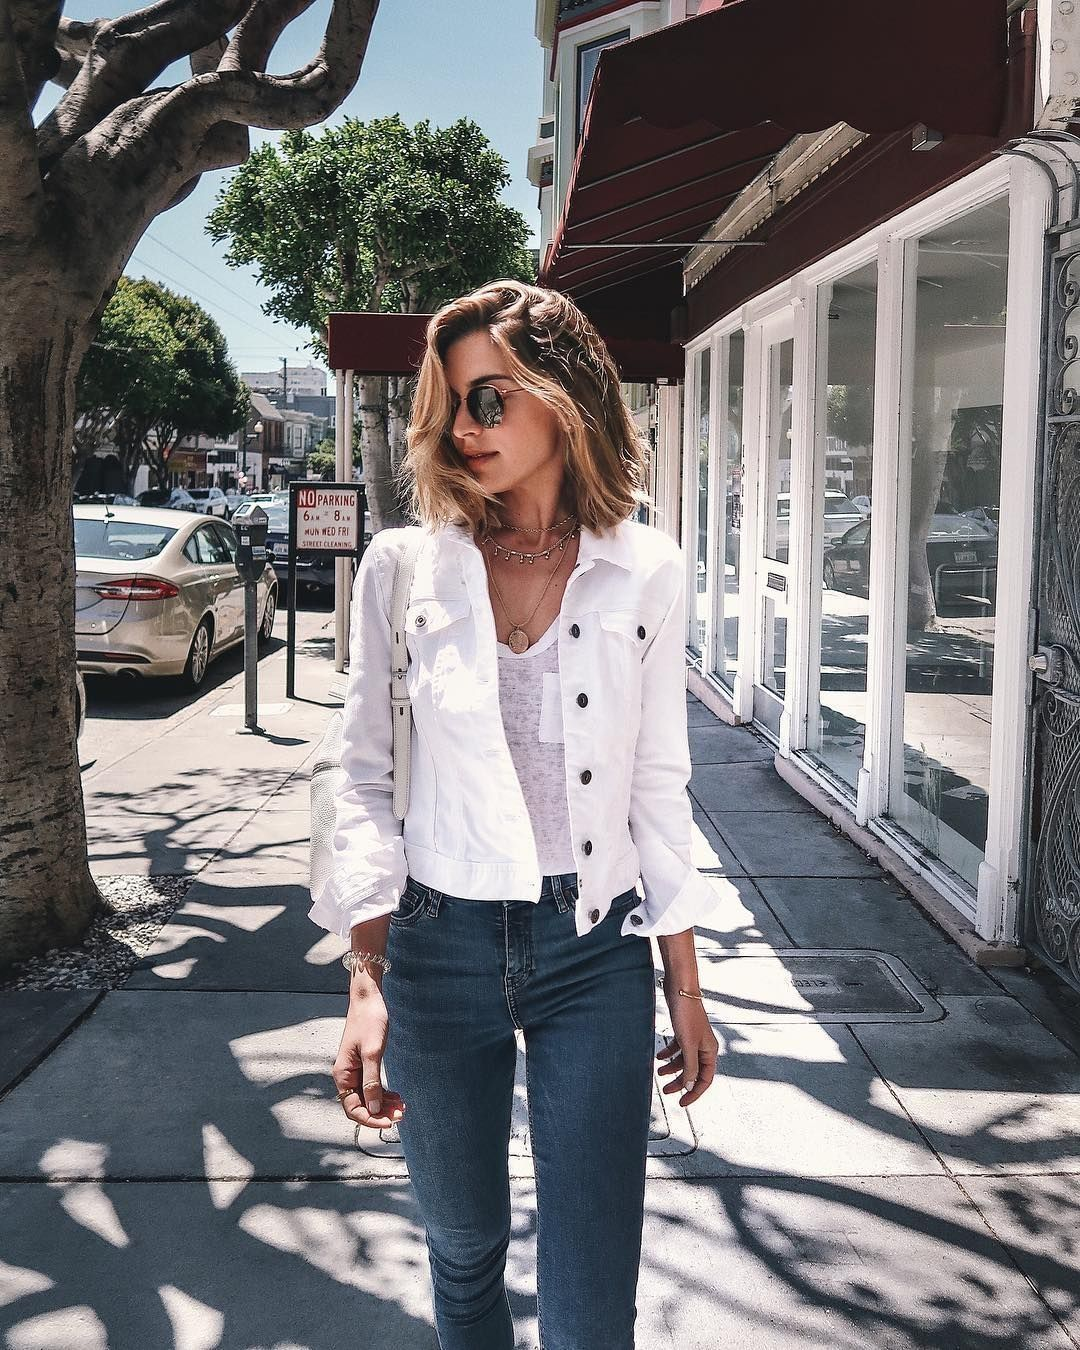 20 Amazing White Denim Outfits Ideas For Womens Denim Jacket Women White Denim Outfit White Jacket Outfit [ 1350 x 1080 Pixel ]